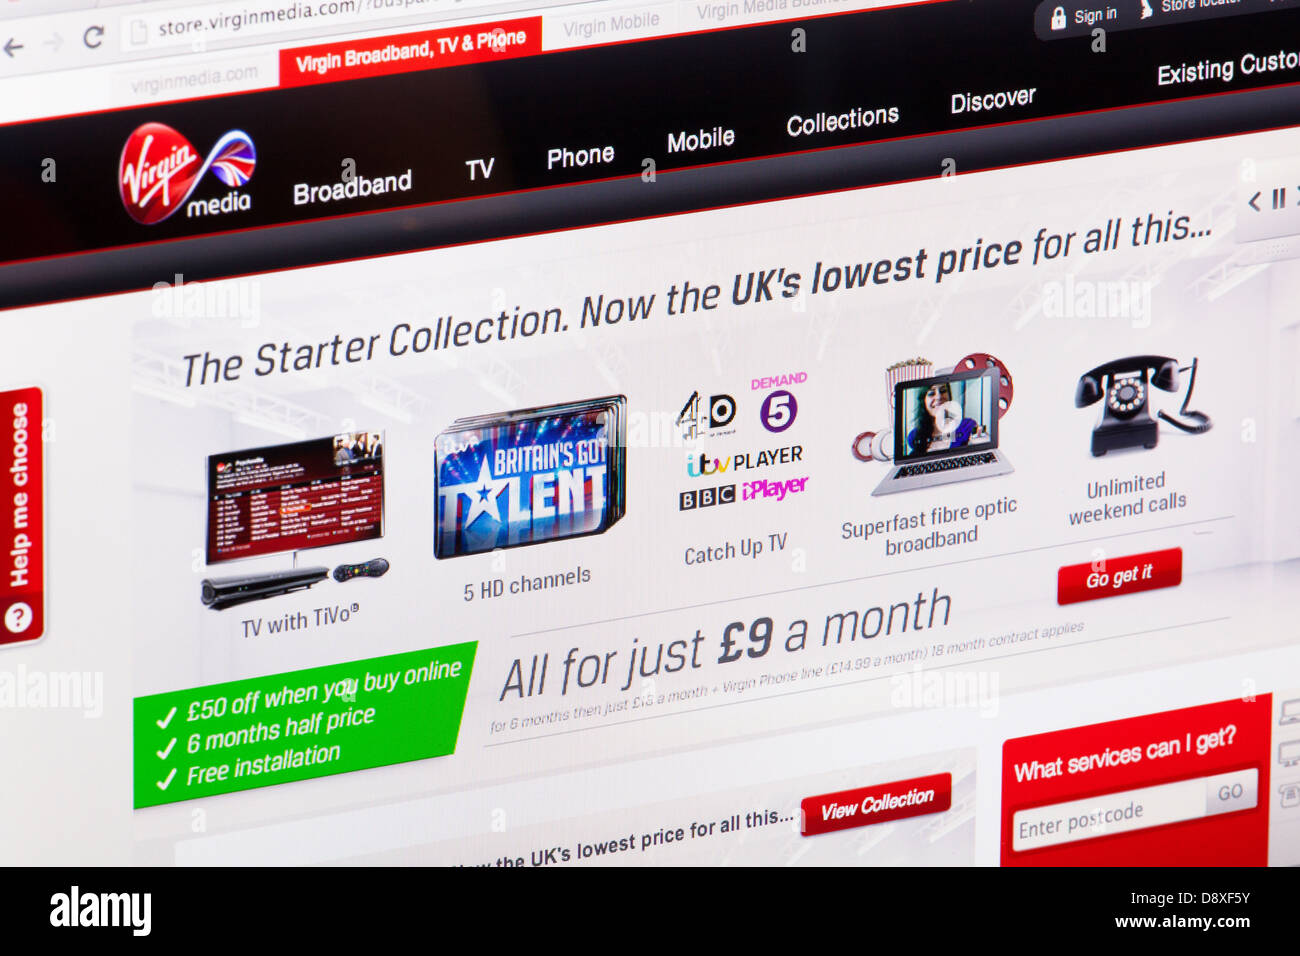 Virgin Media Home Page - Website or web page on a laptop